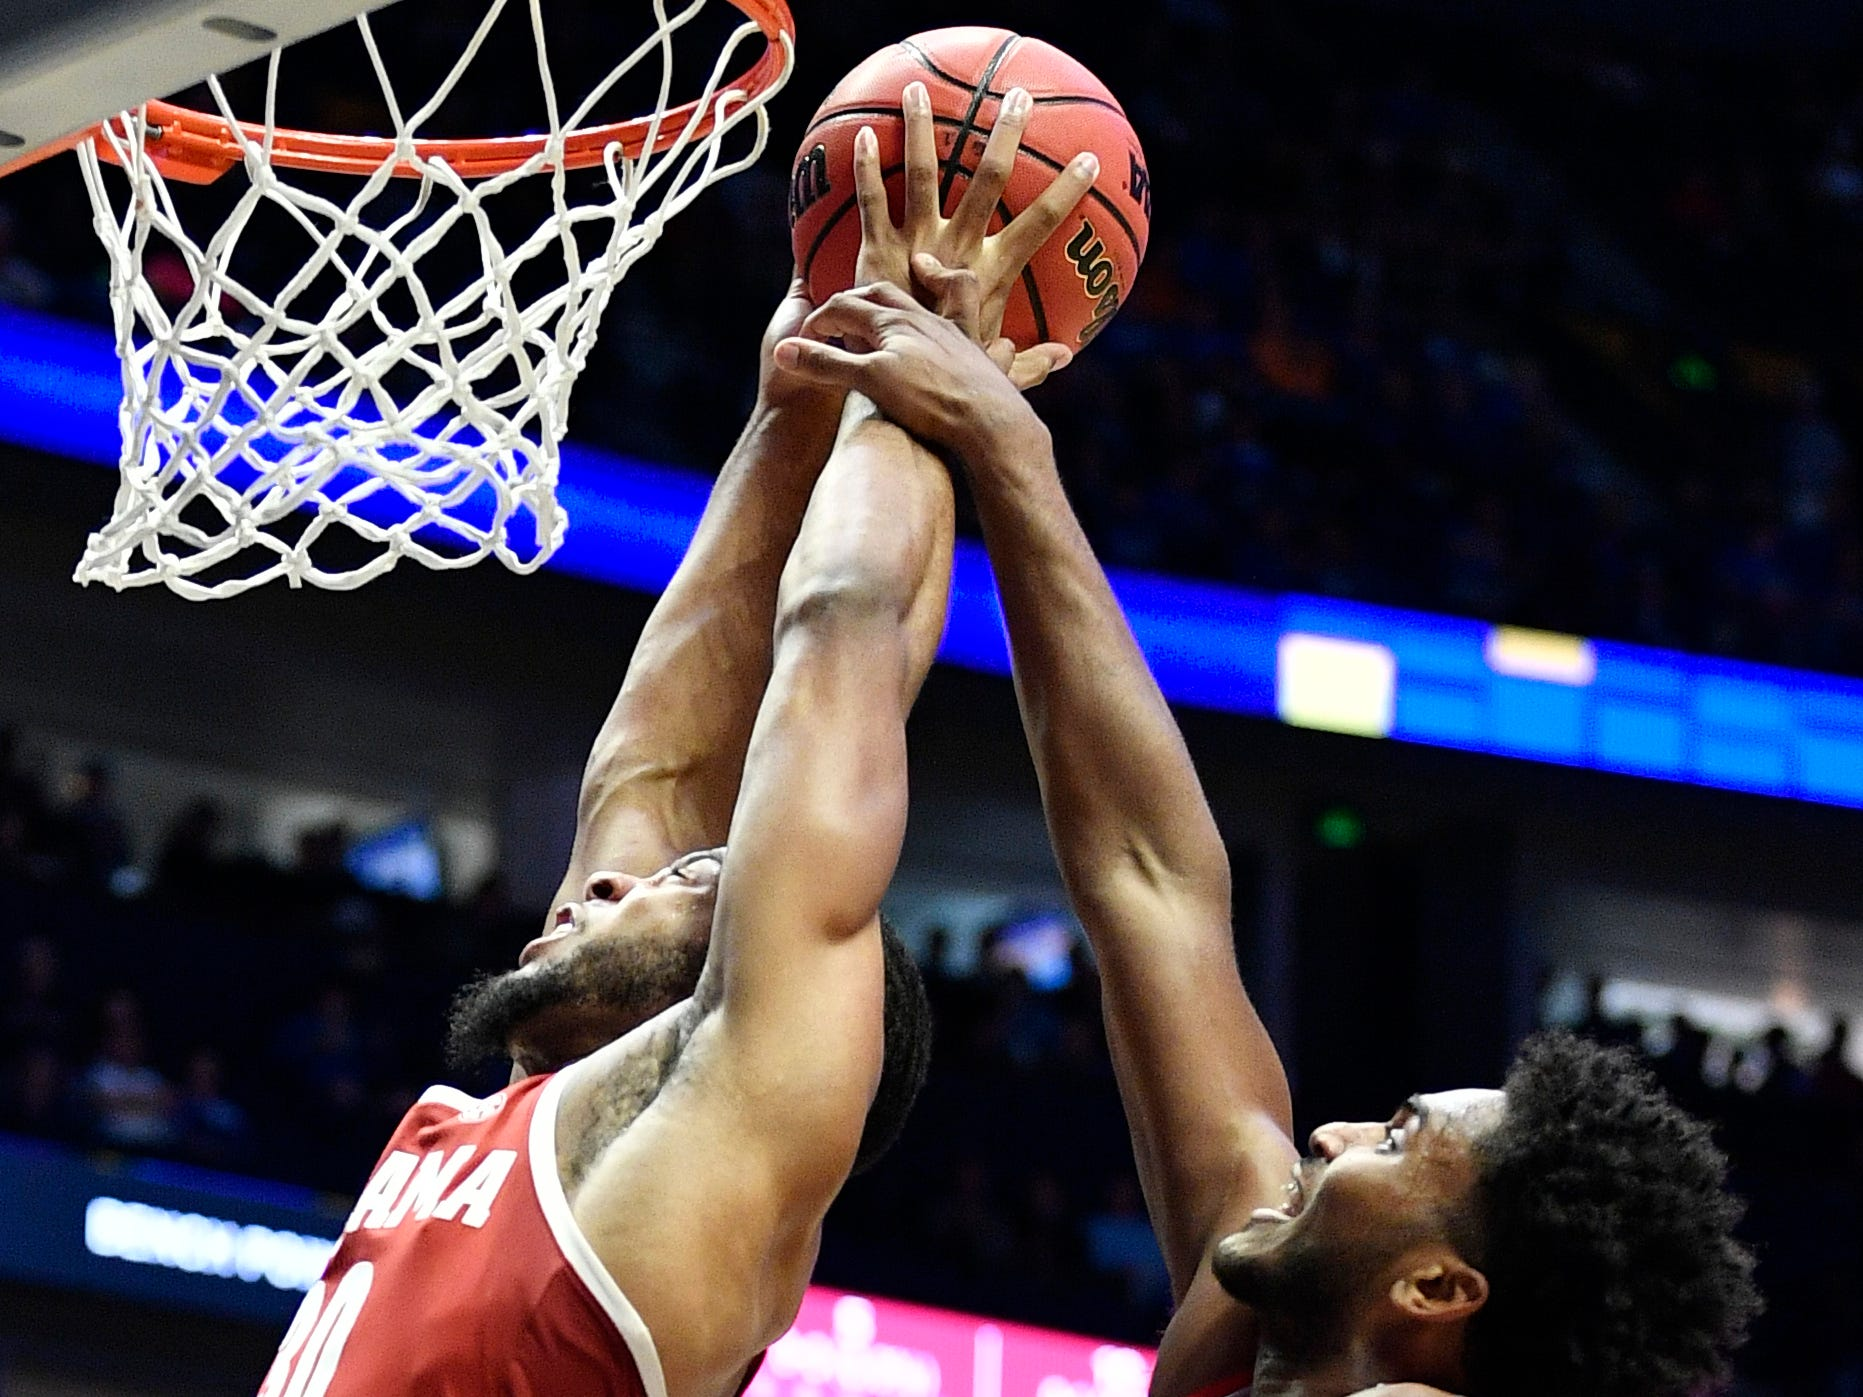 Ole Miss guard/forward Blake Hinson (0) fouls Alabama forward Galin Smith (30) during the first half of the SEC Men's Basketball Tournament game at Bridgestone Arena in Nashville, Tenn., Thursday, March 14, 2019.